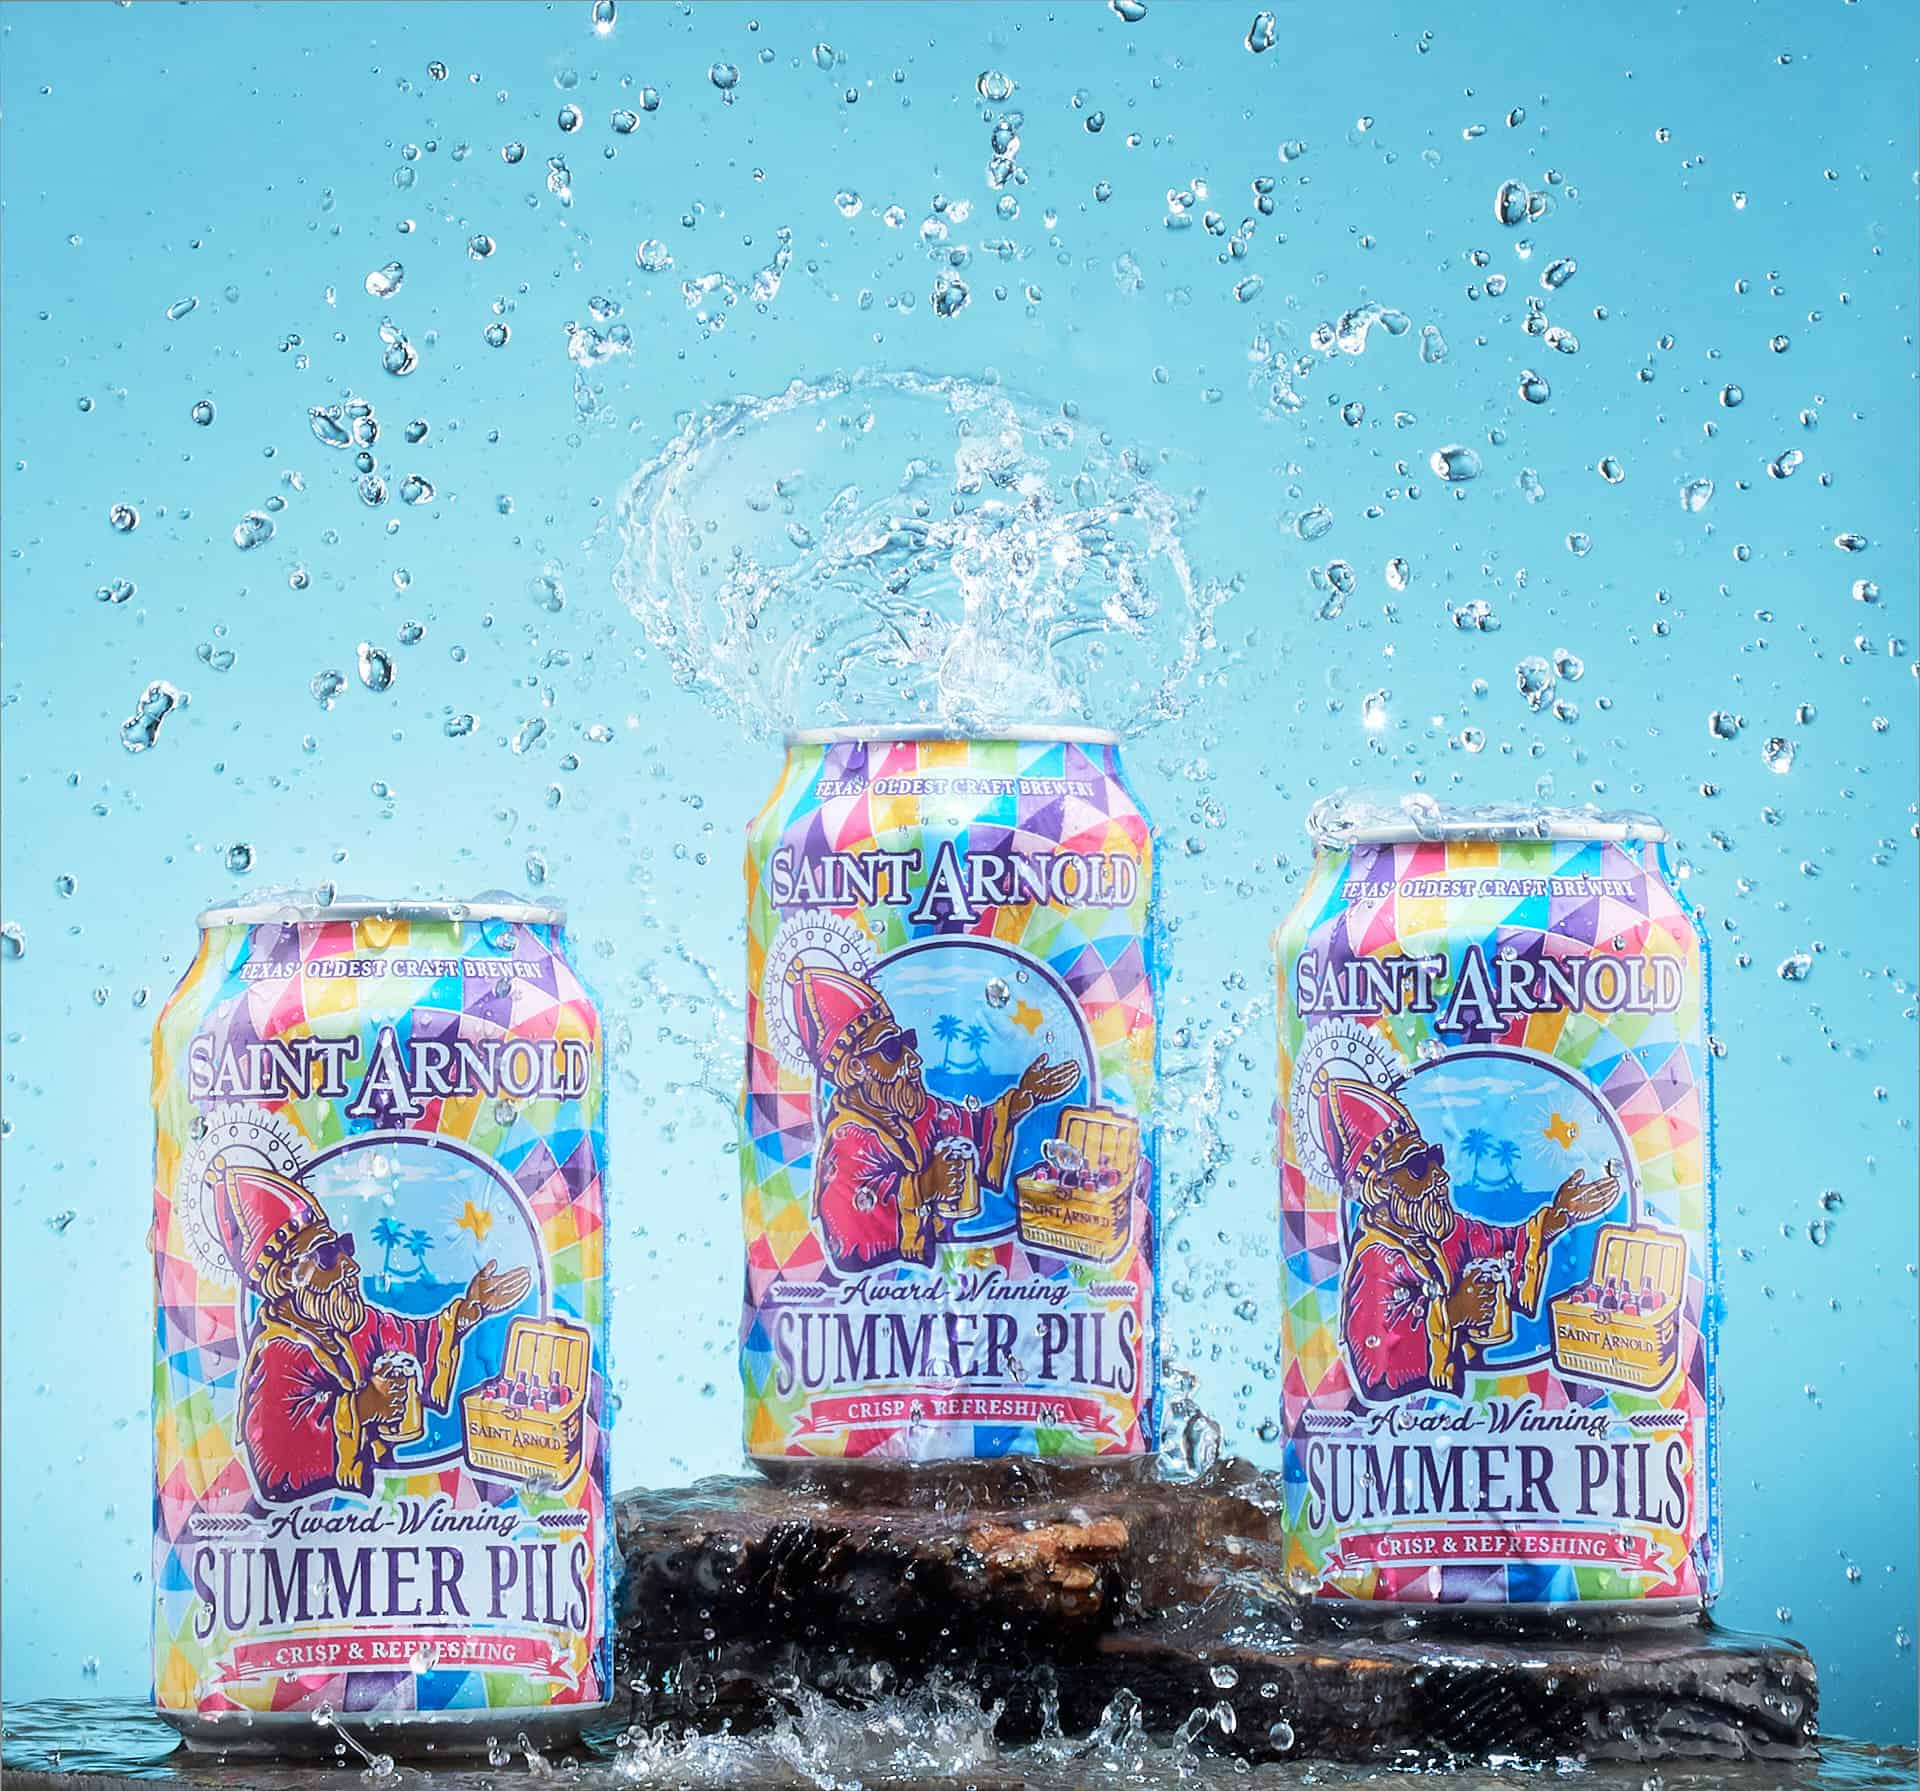 3 cans of Saint Arnold Beer splashed with water.